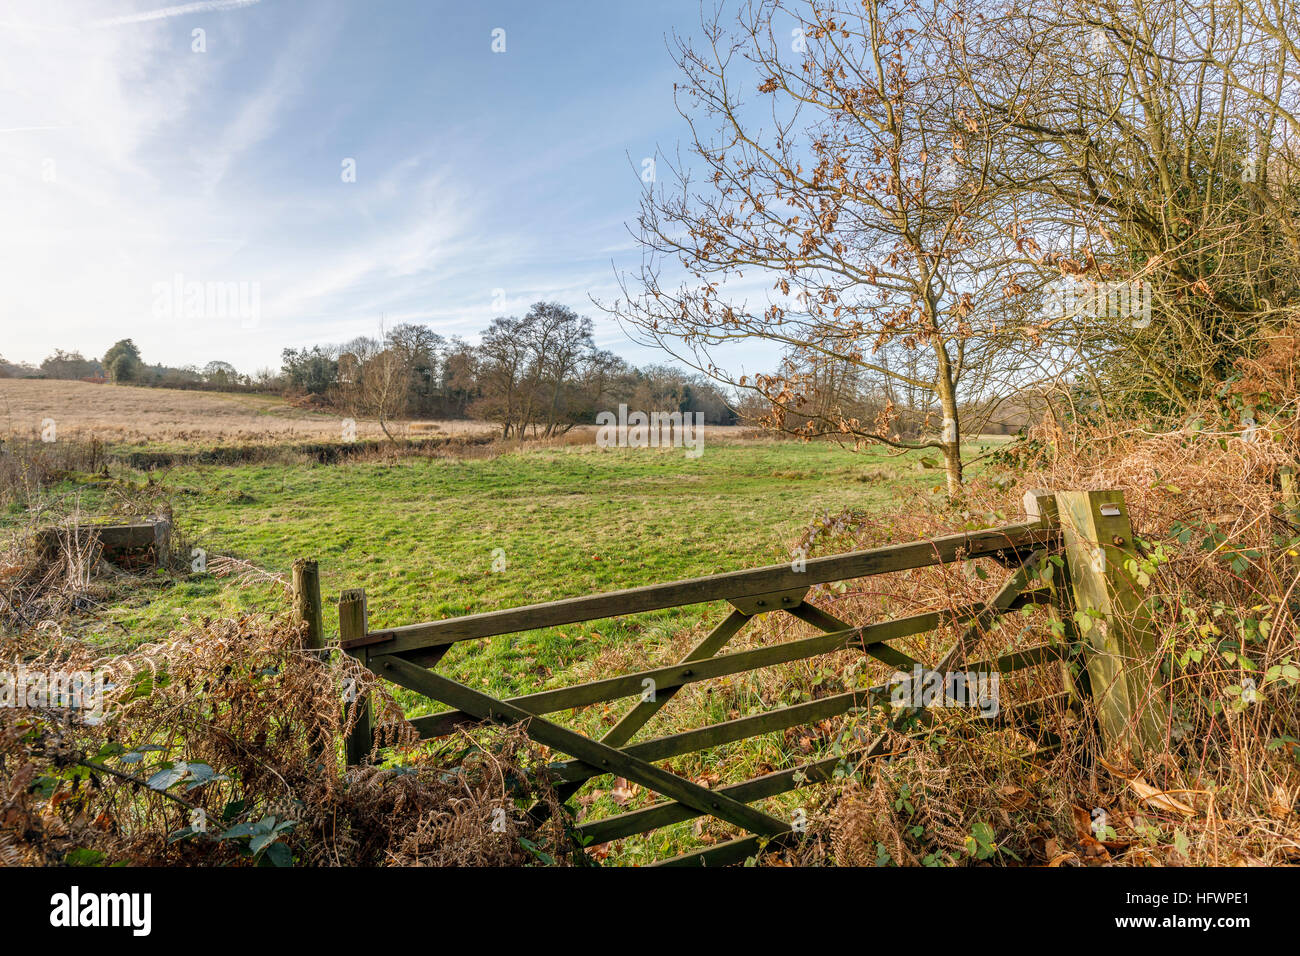 Crooked five bar gate at the entrance to a field in winter at Tilbury, a village near Farnham, Surrey, UK - Stock Image